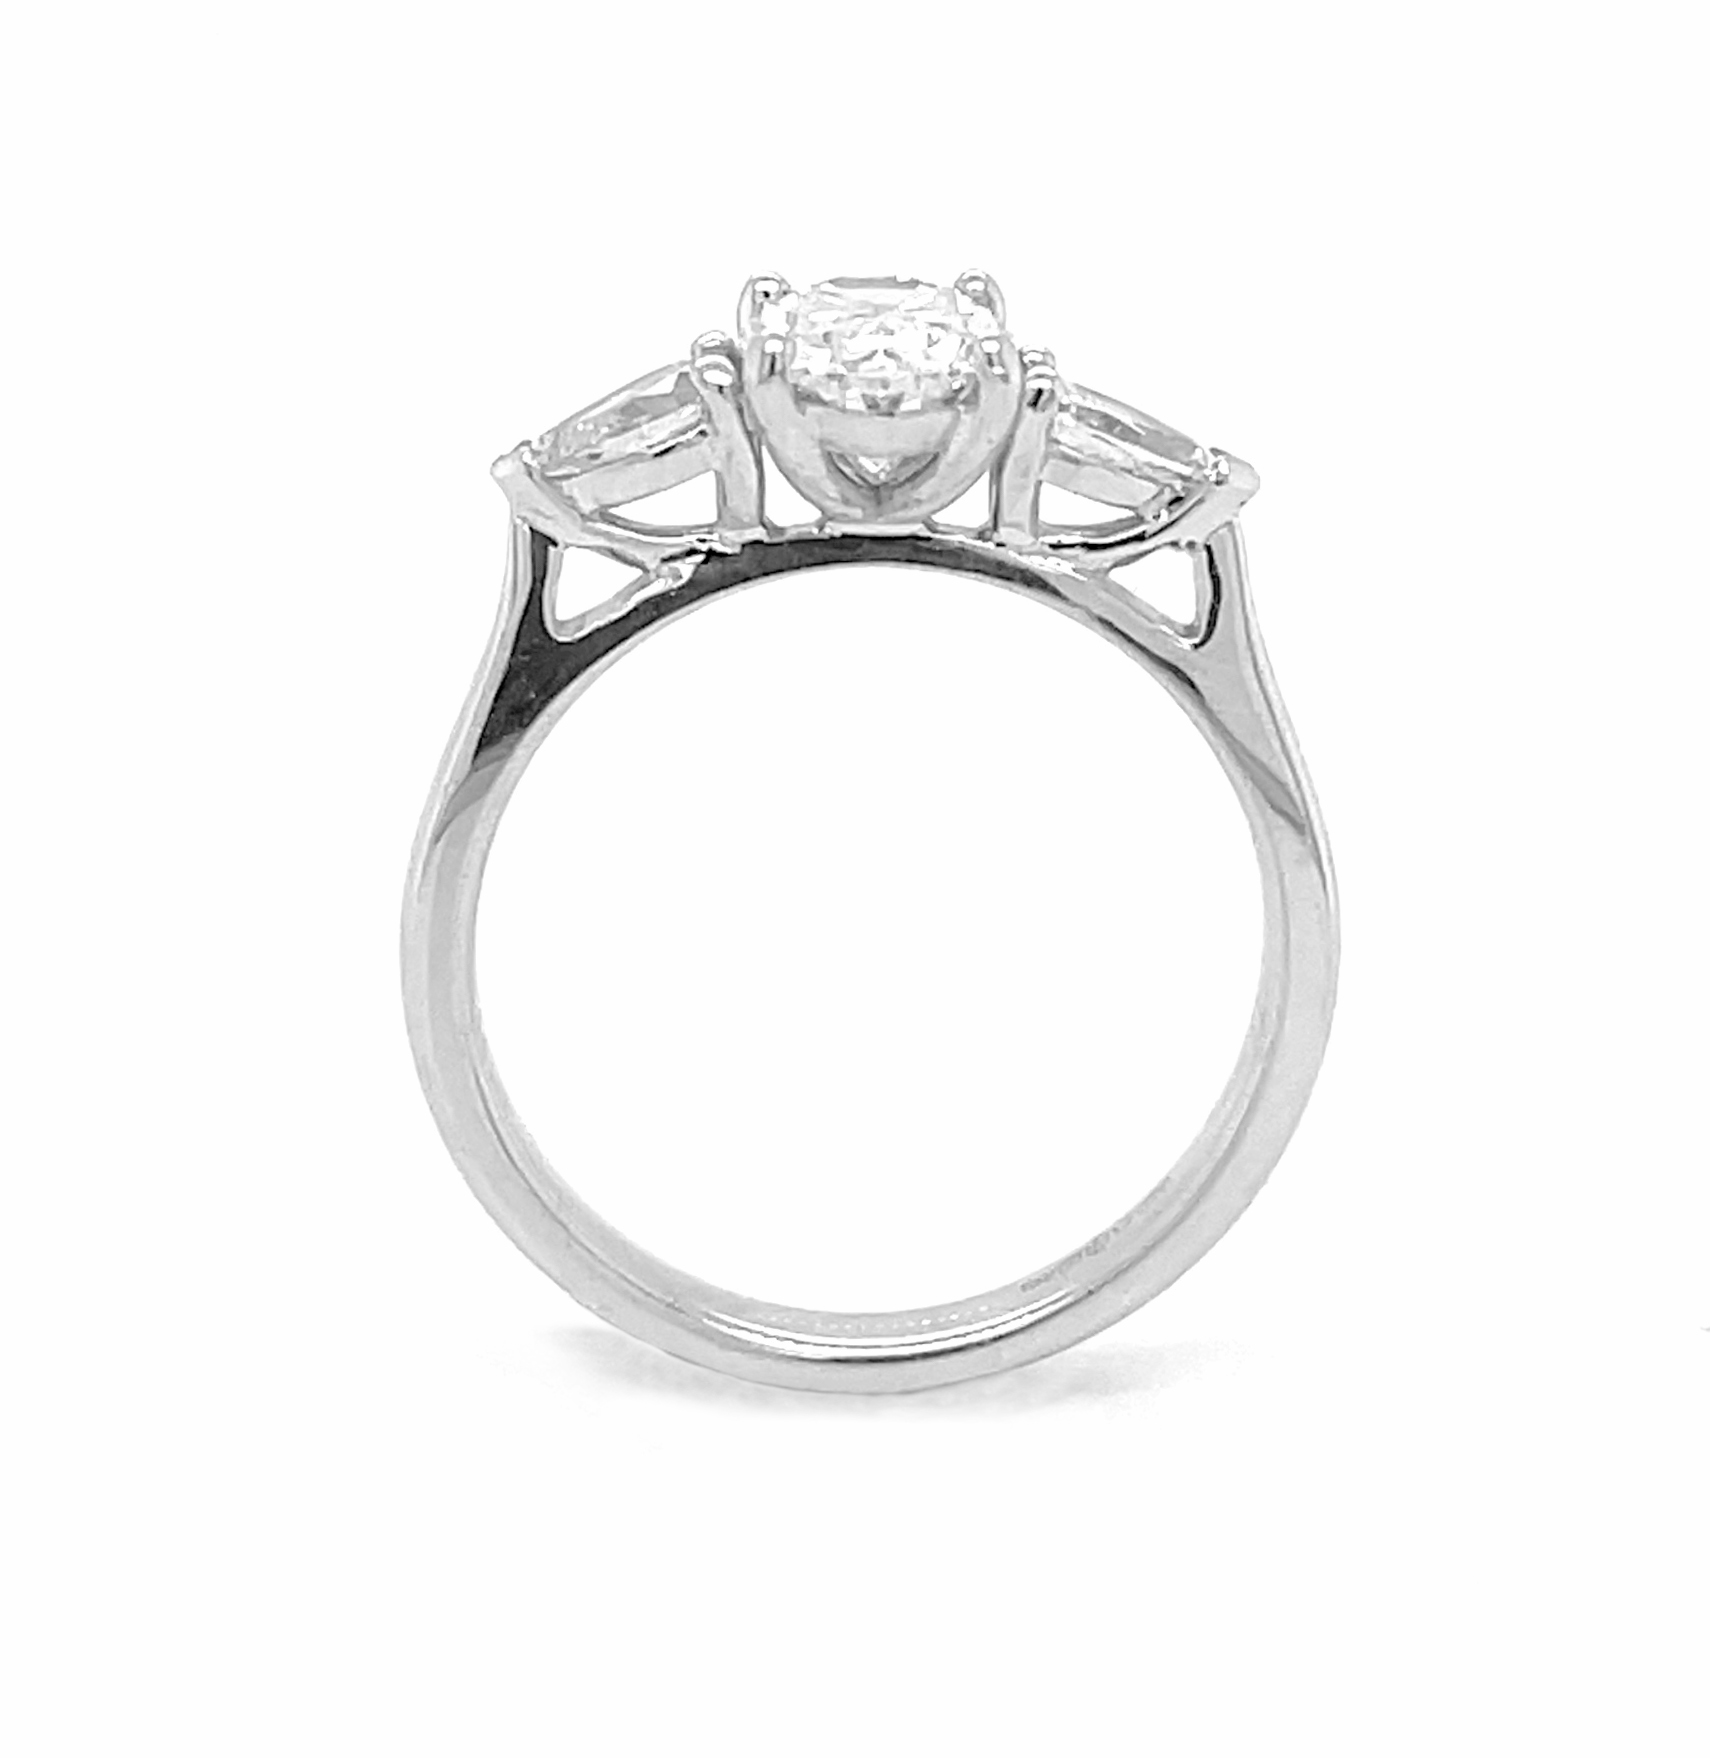 18k White Gold Oval Diamond Engagement Ring With Pearshape Diamond Shoulders